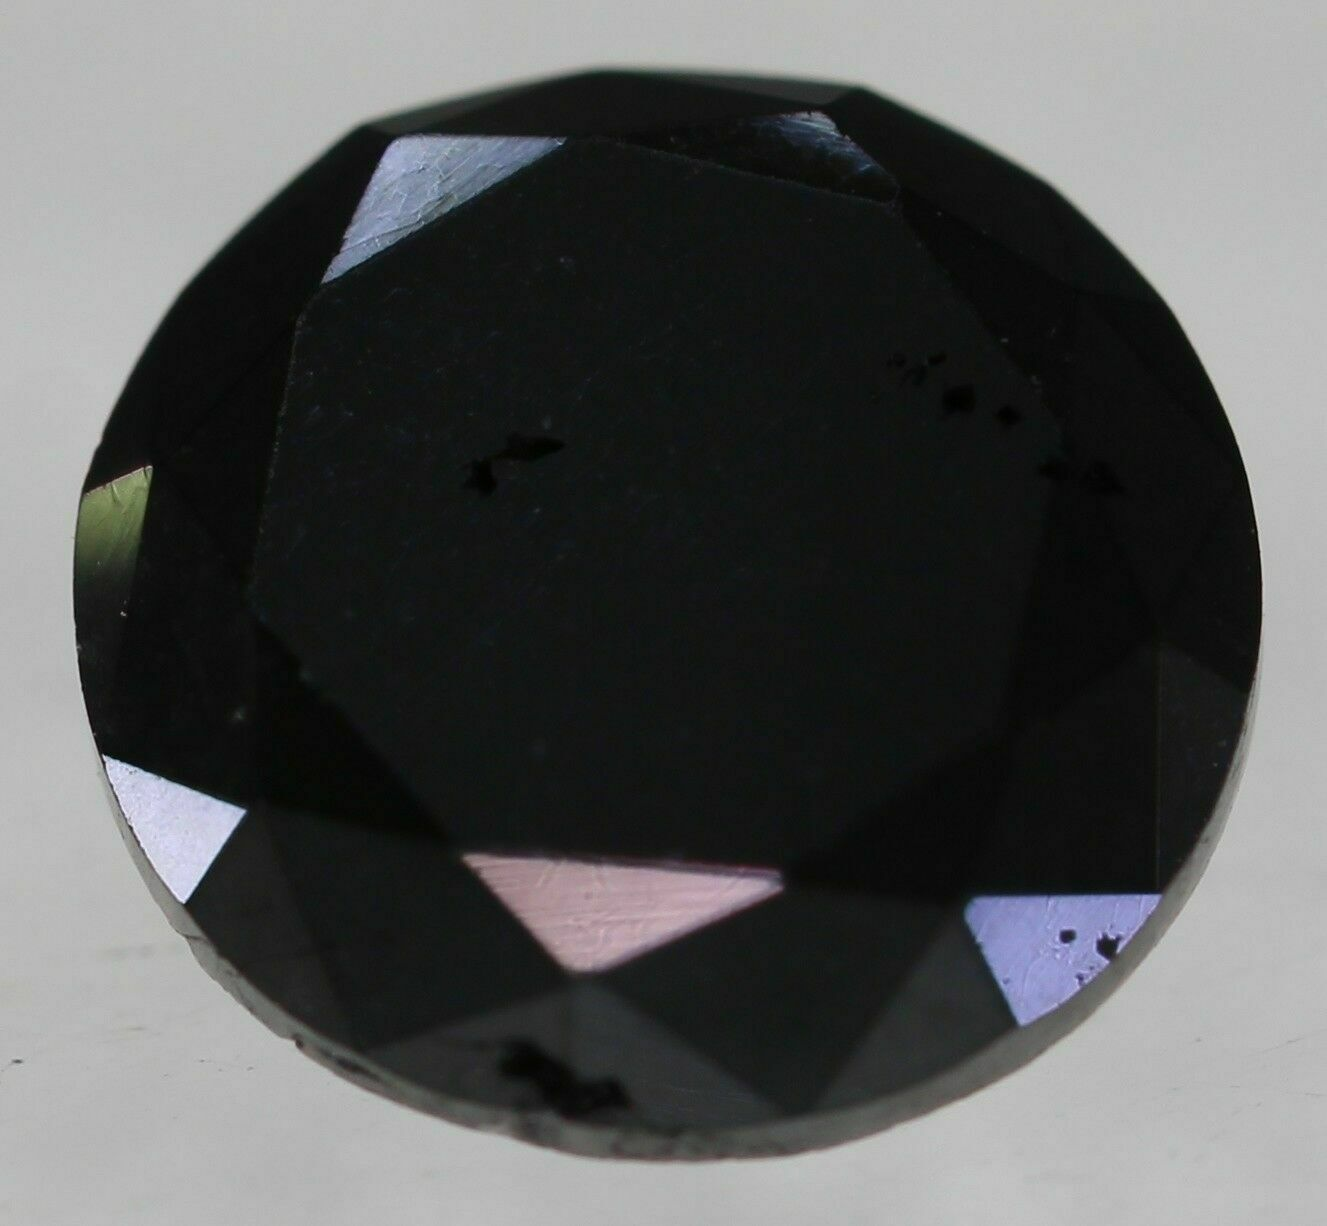 Certified-132-Carat-Fancy-Black-Round-Brilliant-Natural-Diamond-696mm-50-153422604669.JPG